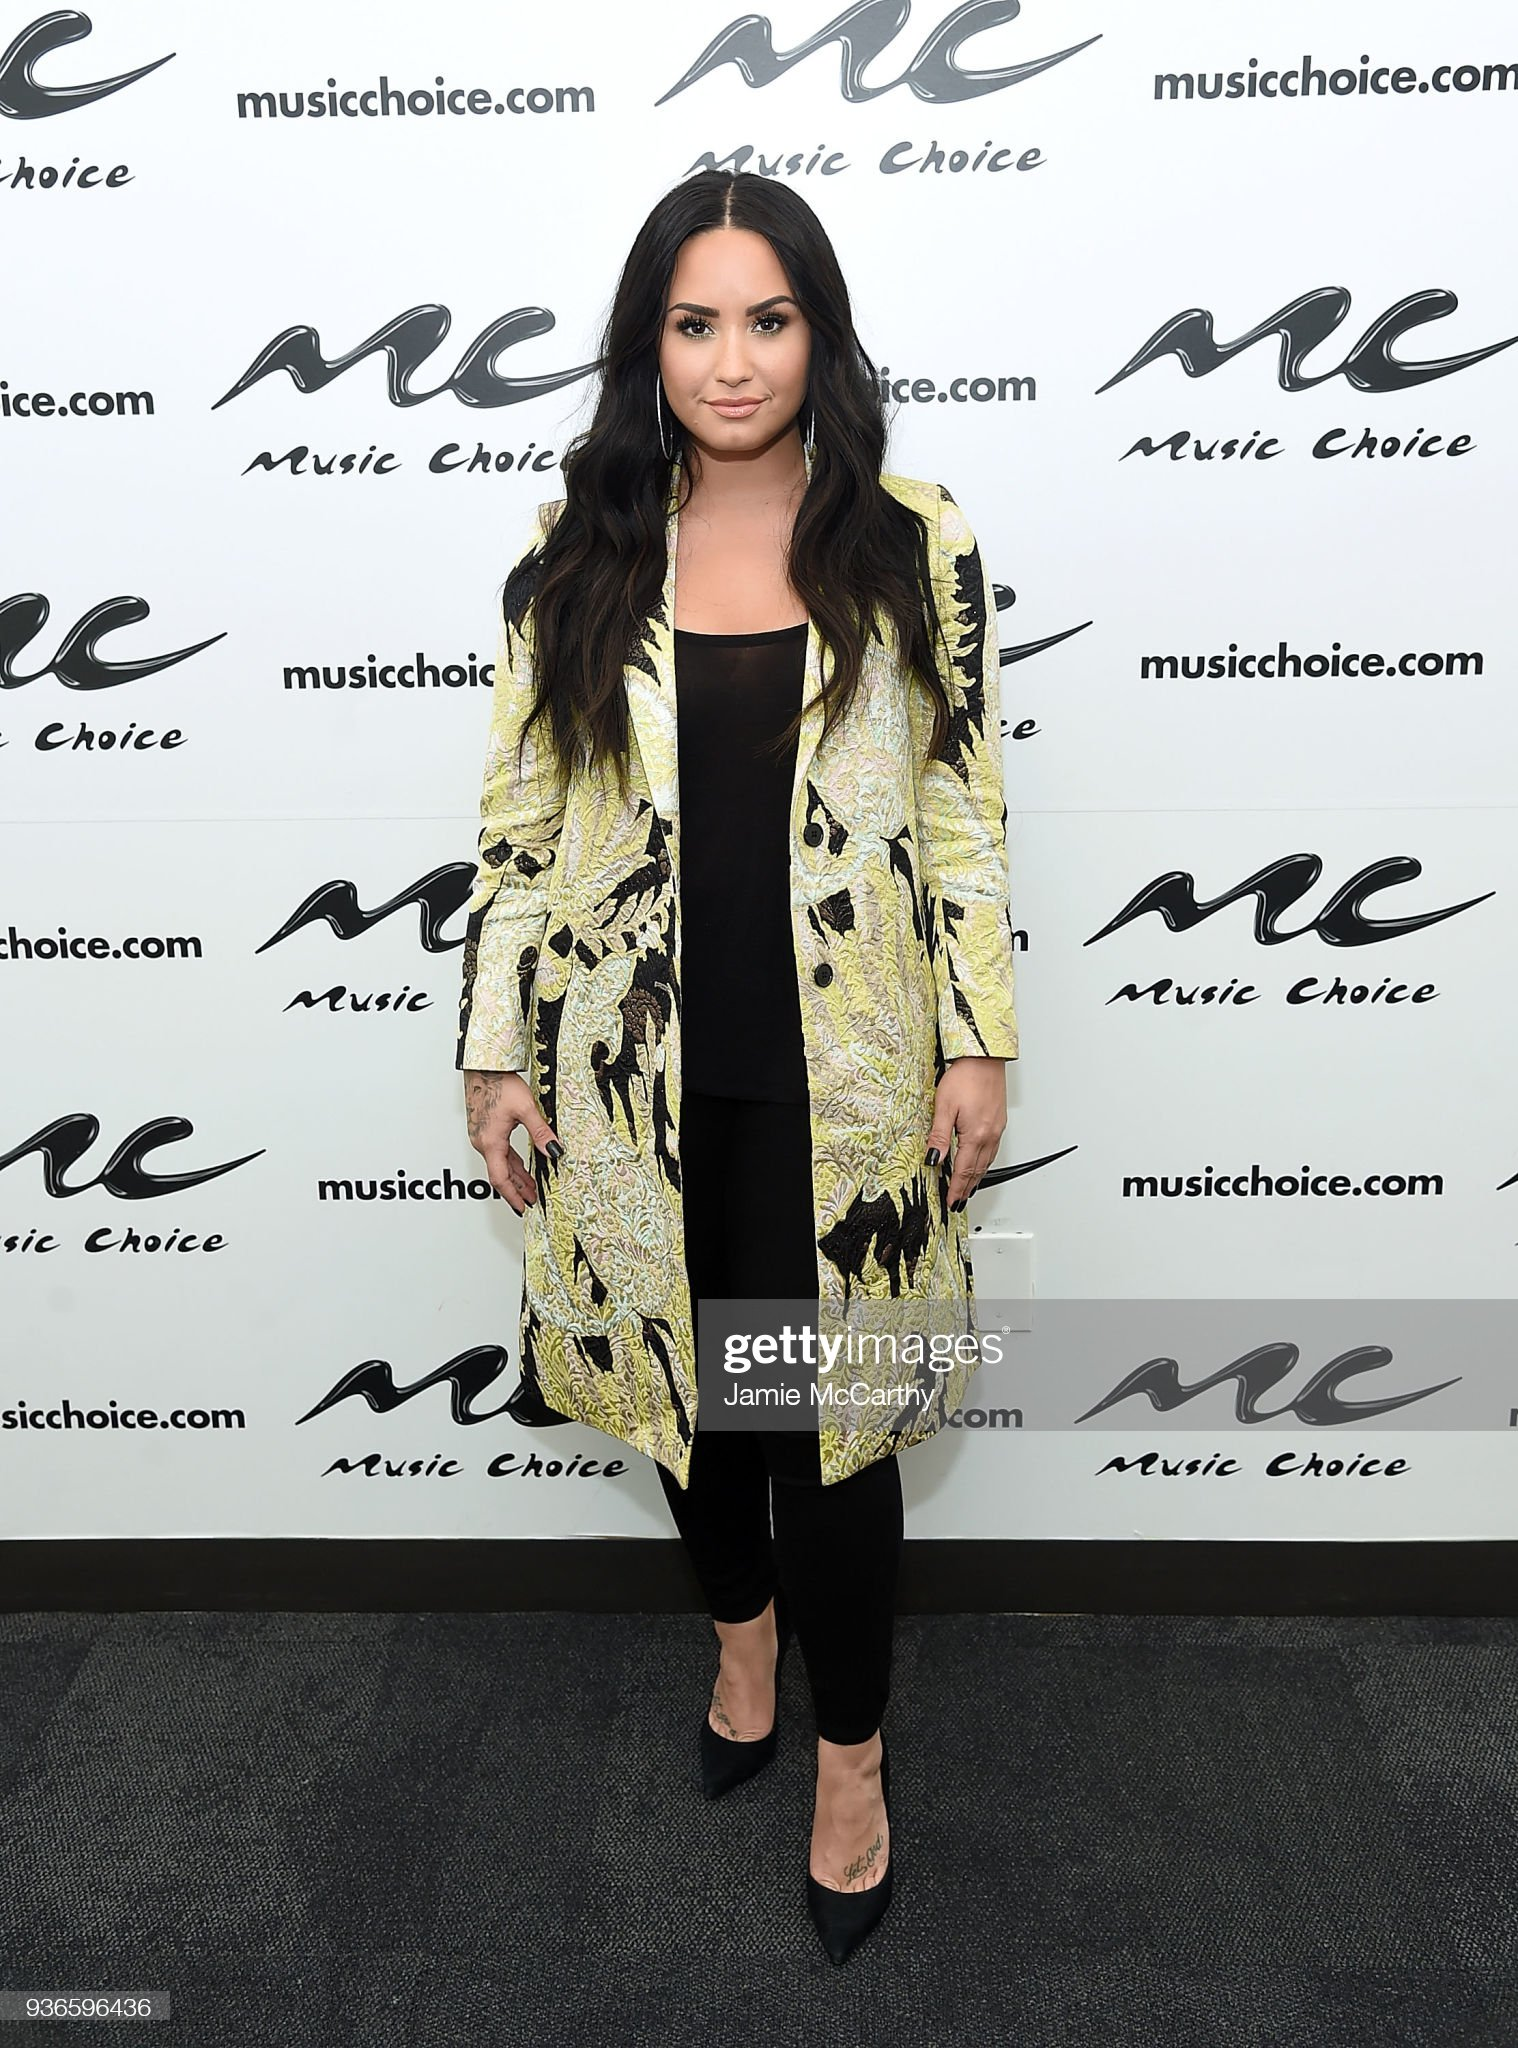 ¿Cuánto mide Demi Lovato? - Altura - Real height Demi-lovato-visits-music-choice-at-music-choice-on-march-22-2018-in-picture-id936596436?s=2048x2048